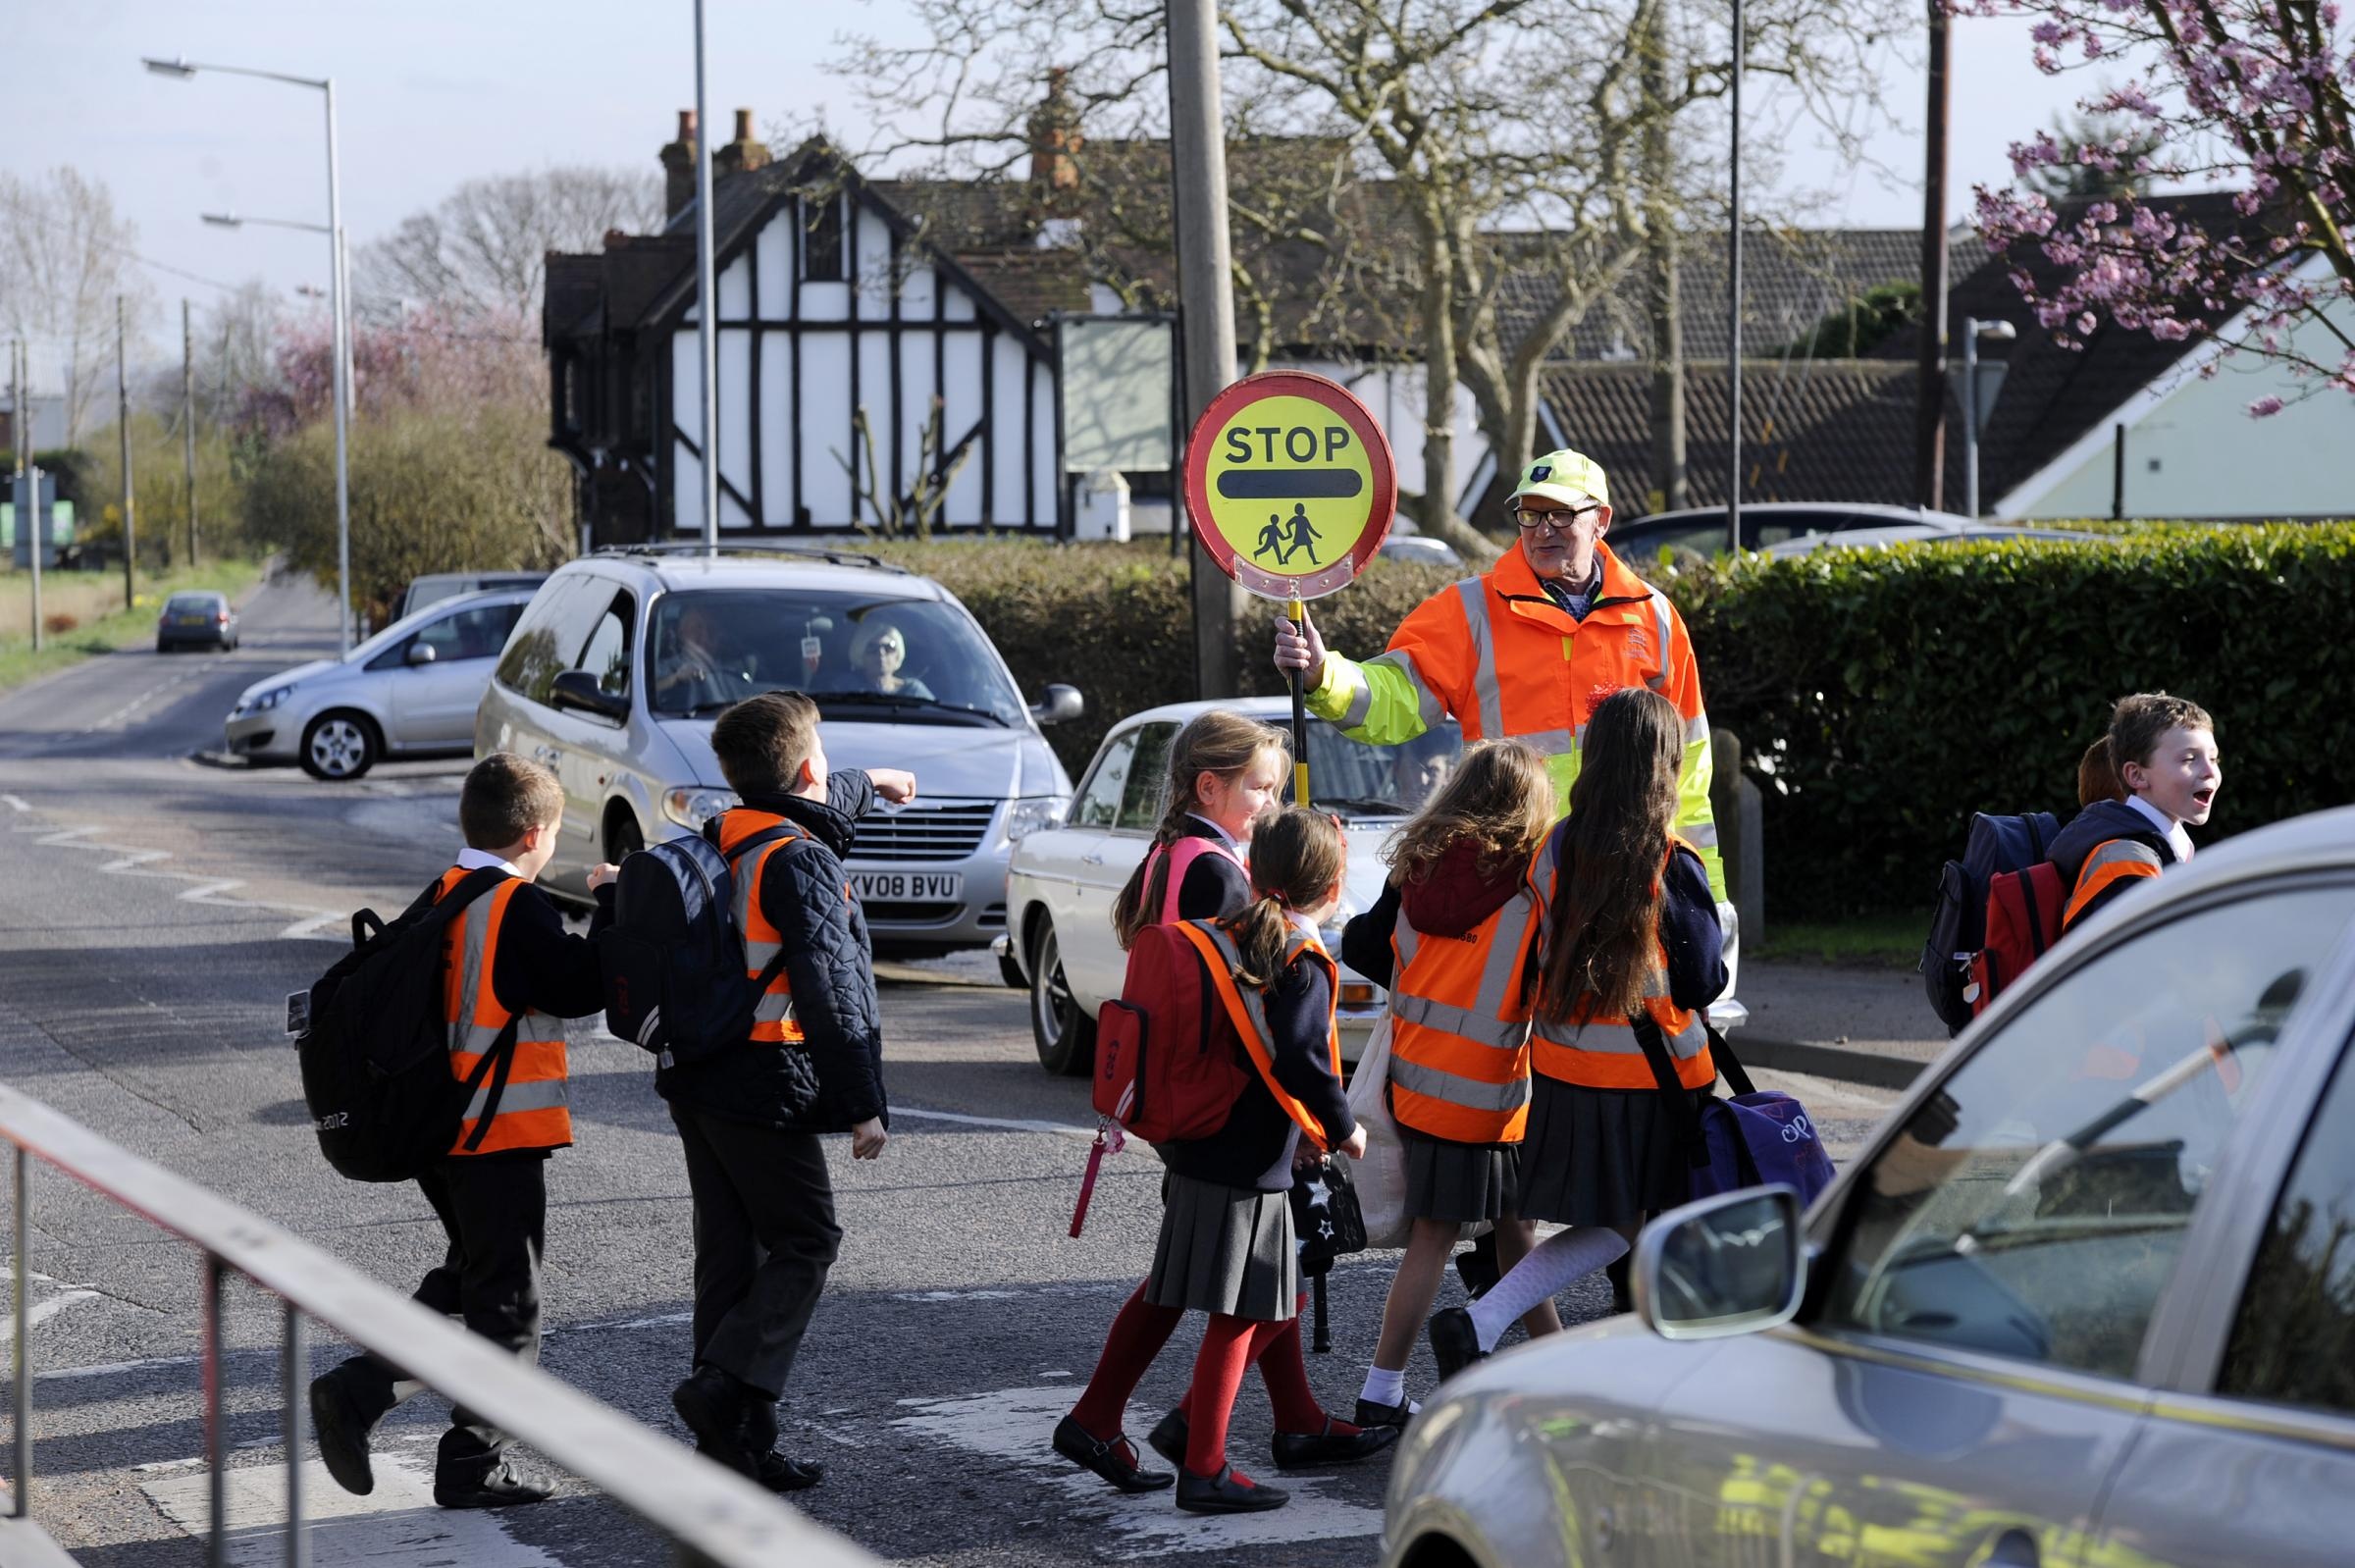 Save Tom: Tom Dodd at St Peter's Catholic Primary School in Billericay